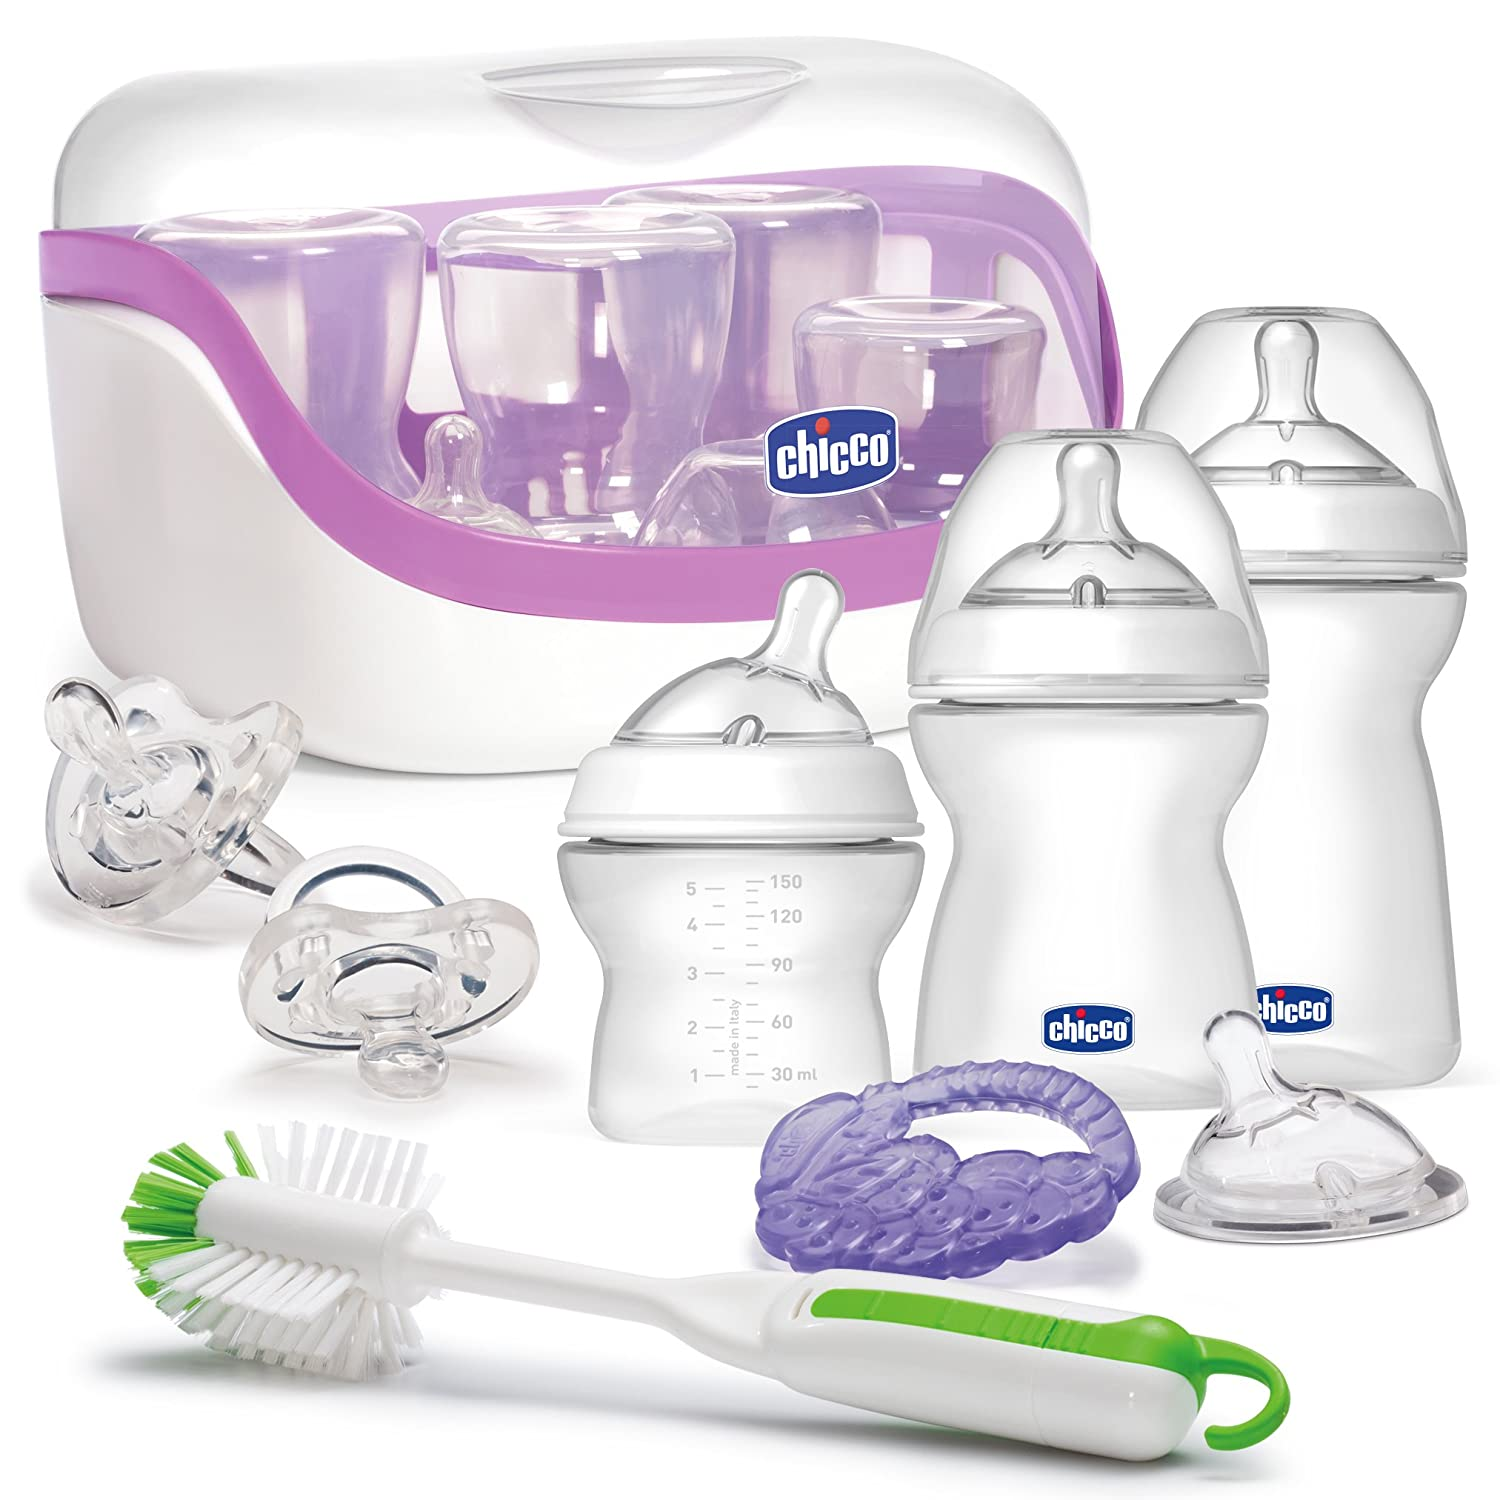 Chicco 8074260 NaturalFit Gift Set-All You Need Starter Set, White 00080742600070